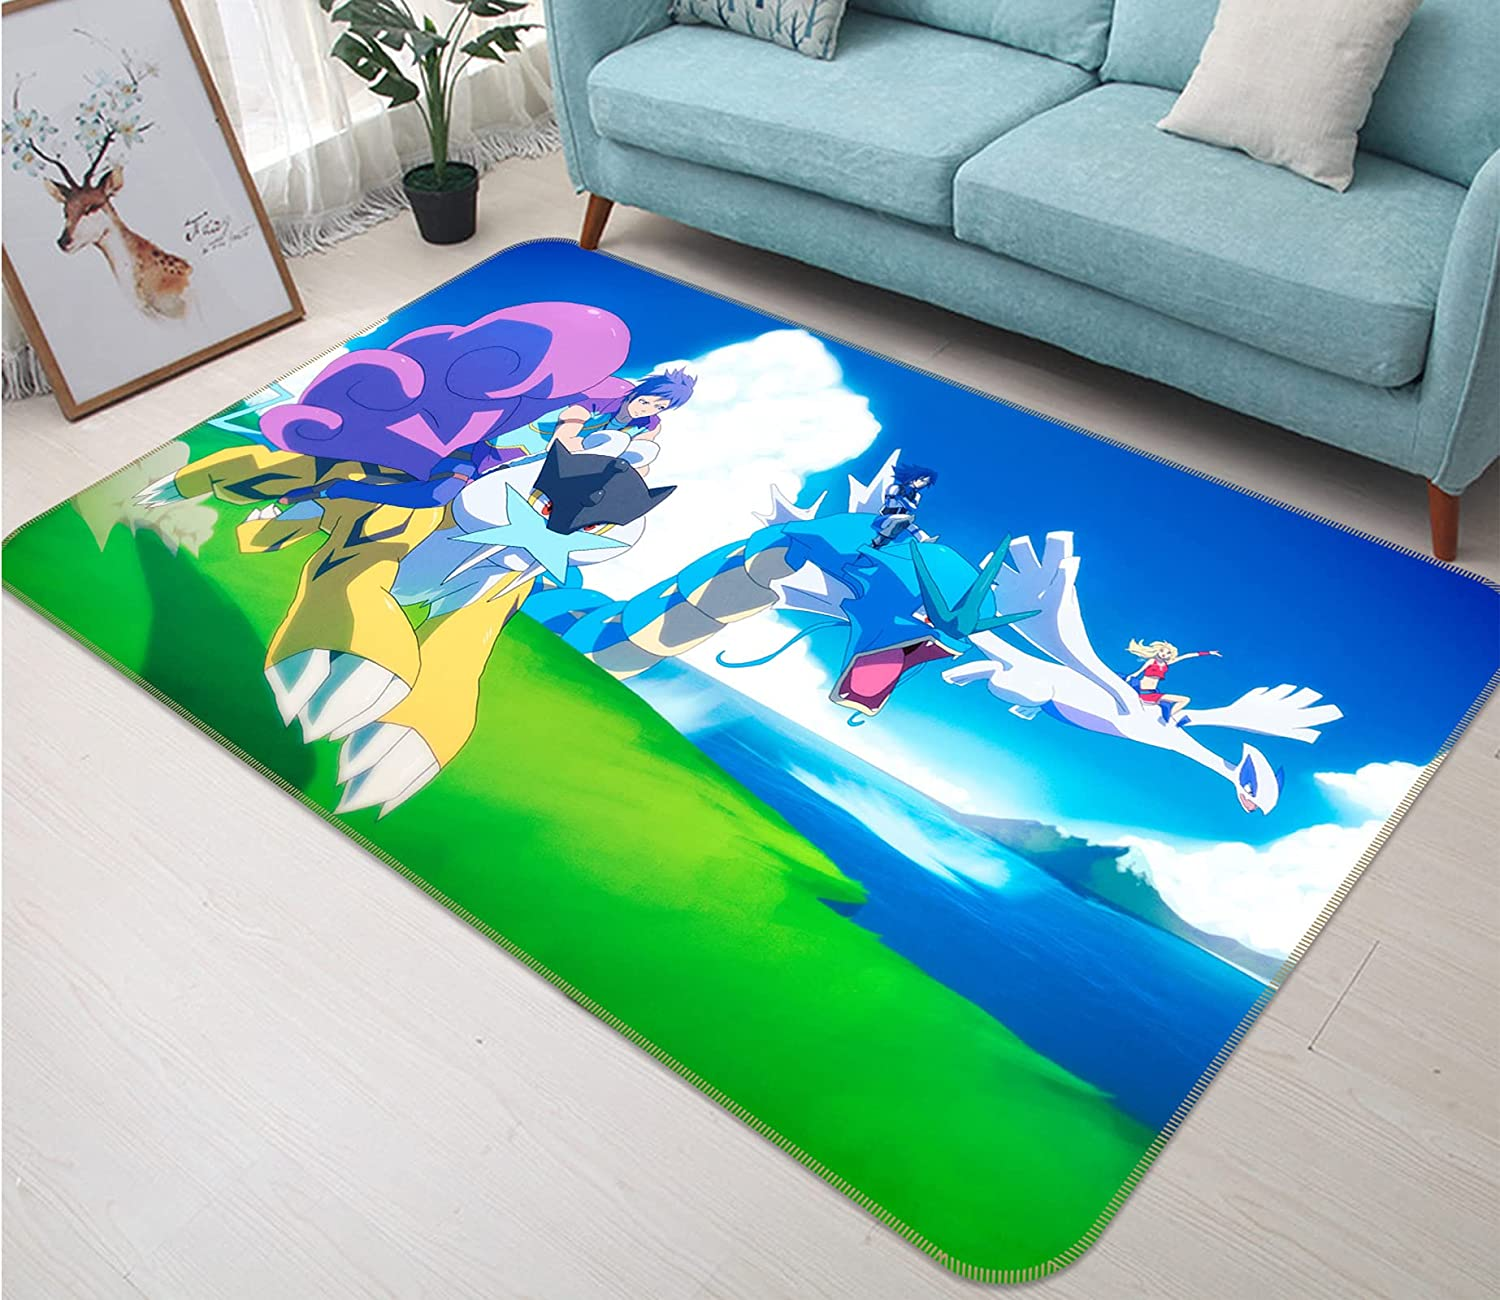 3D Rug Mat for Pokemon Pikachu 1625 Opening large release sale Non Ru Product Japan Slip Game Anime